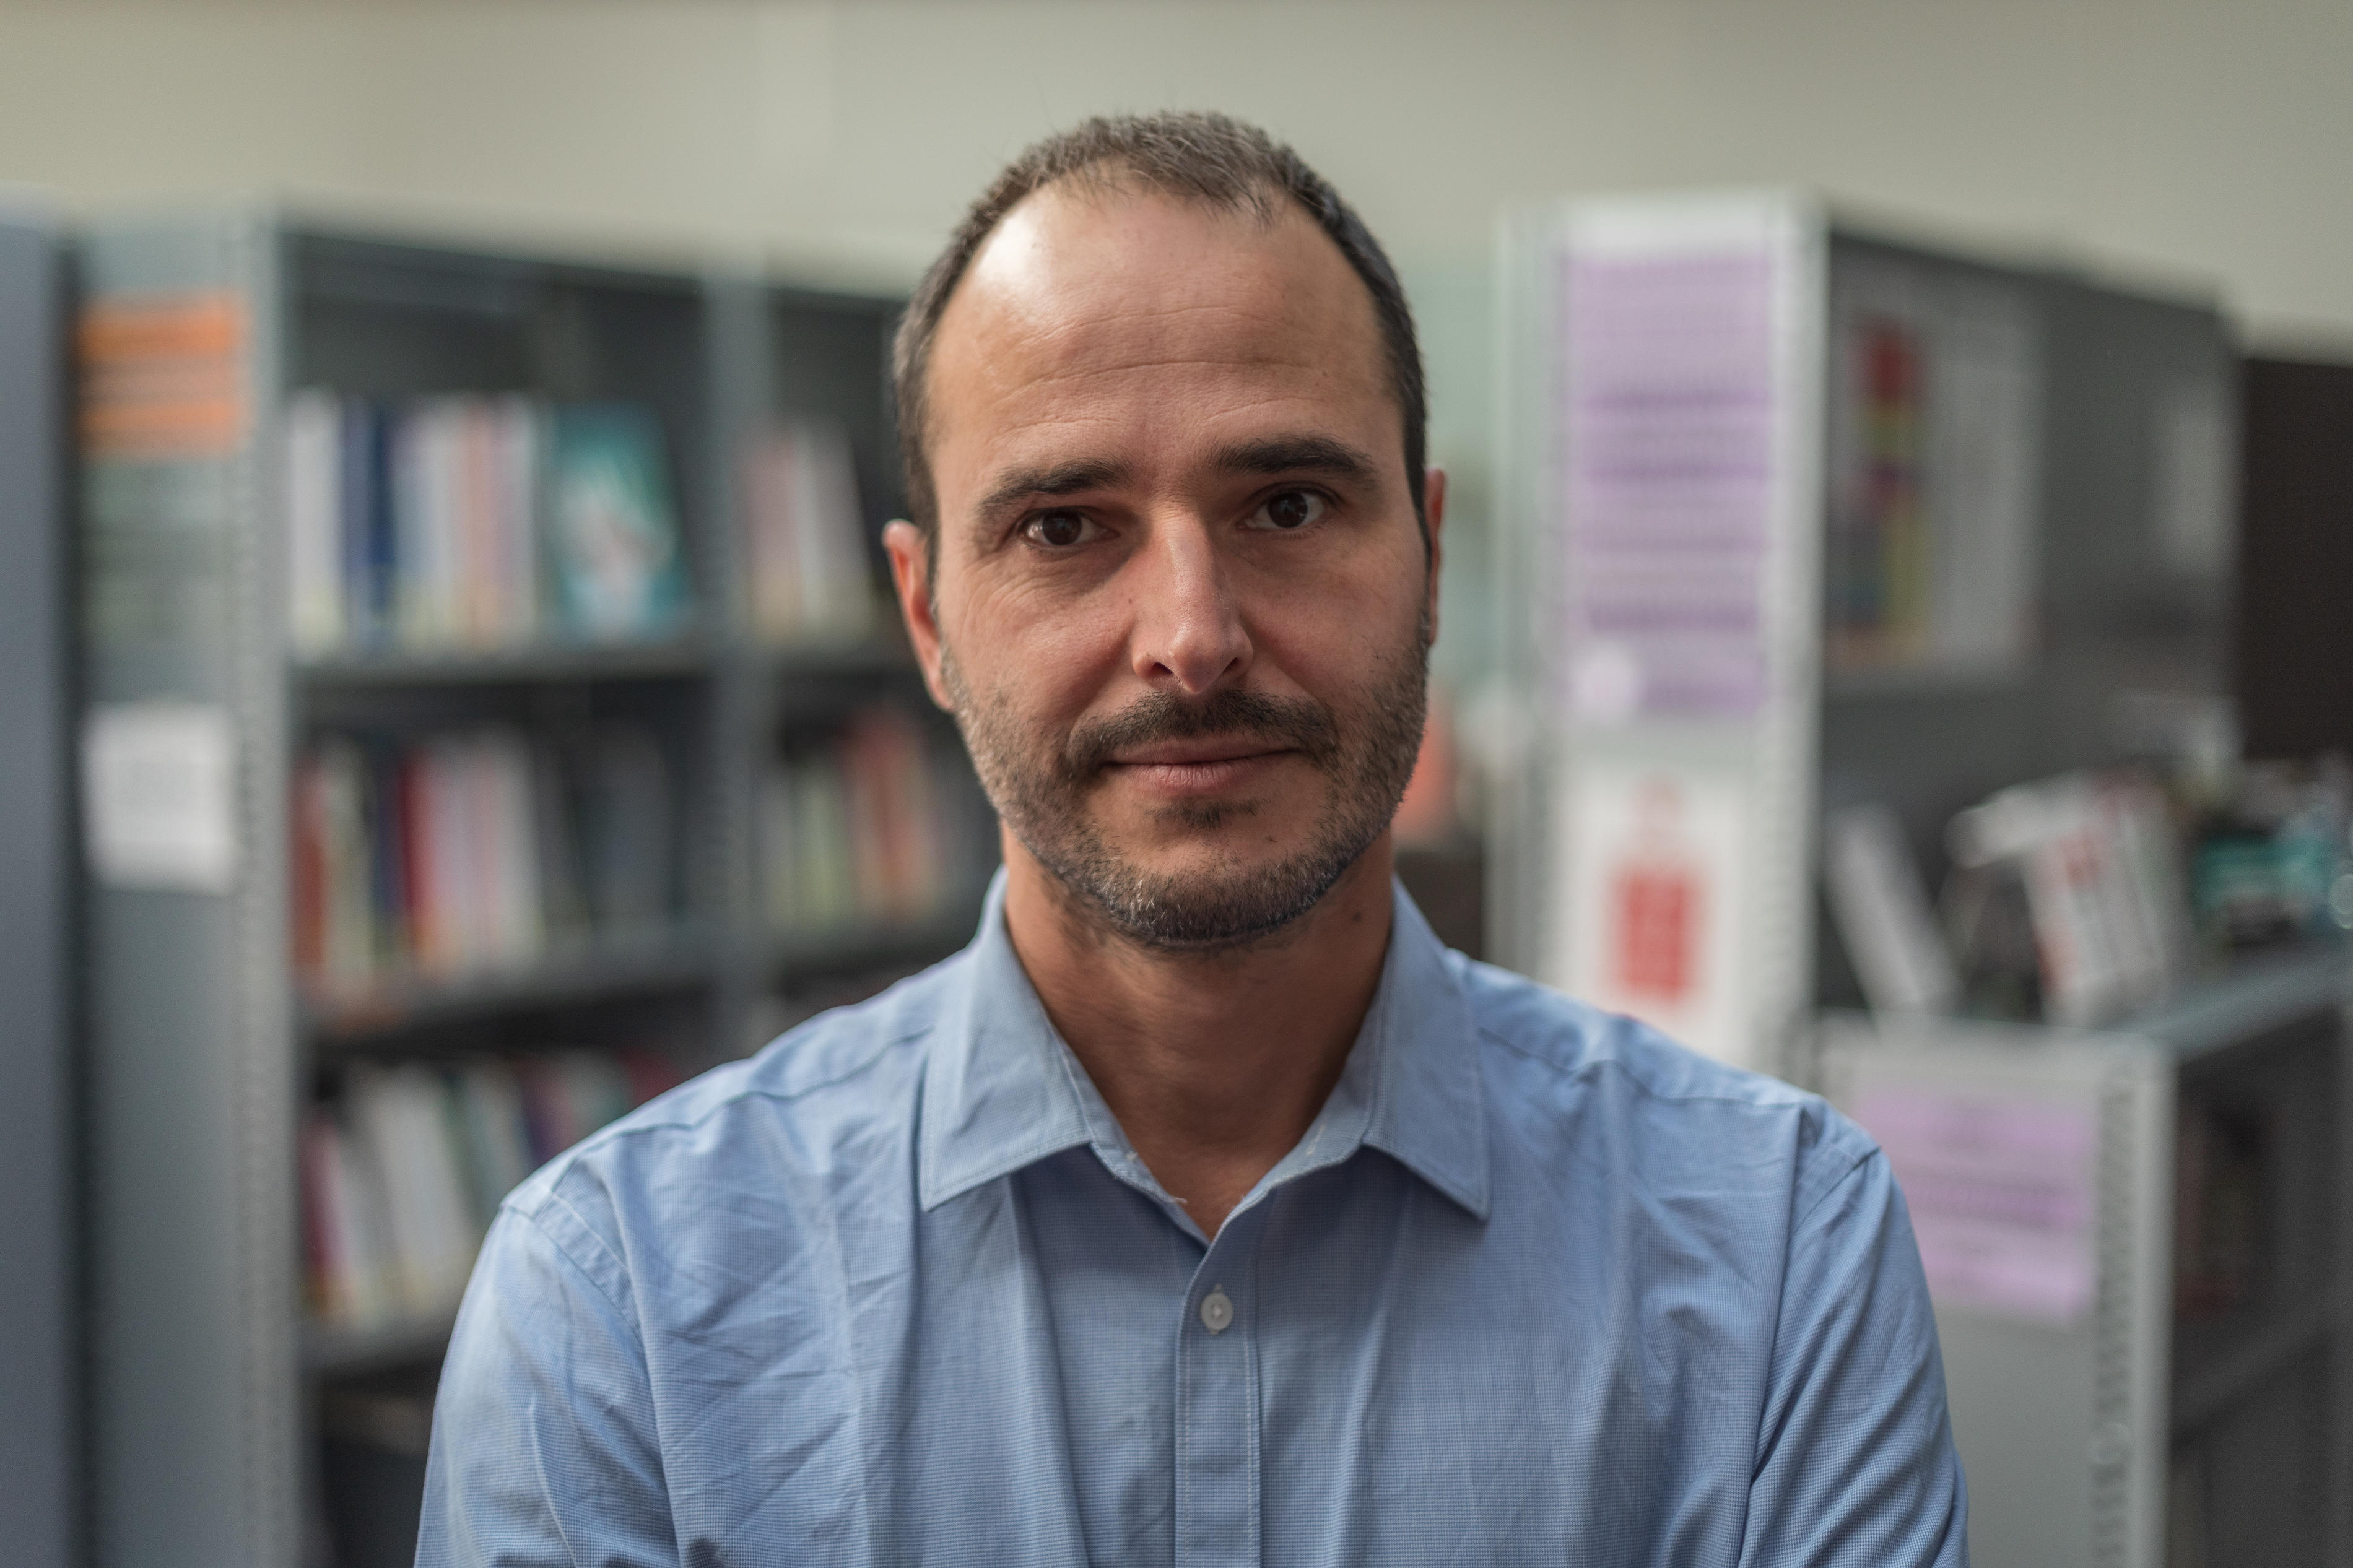 Dr Christos Christou commenced his role as International President of Médecins Sans Frontières in the first week of September 2019. Before this, he held a number of roles in the field with MSF and with the Association in MSF Greece. Dr Christou joined MSF in 2002